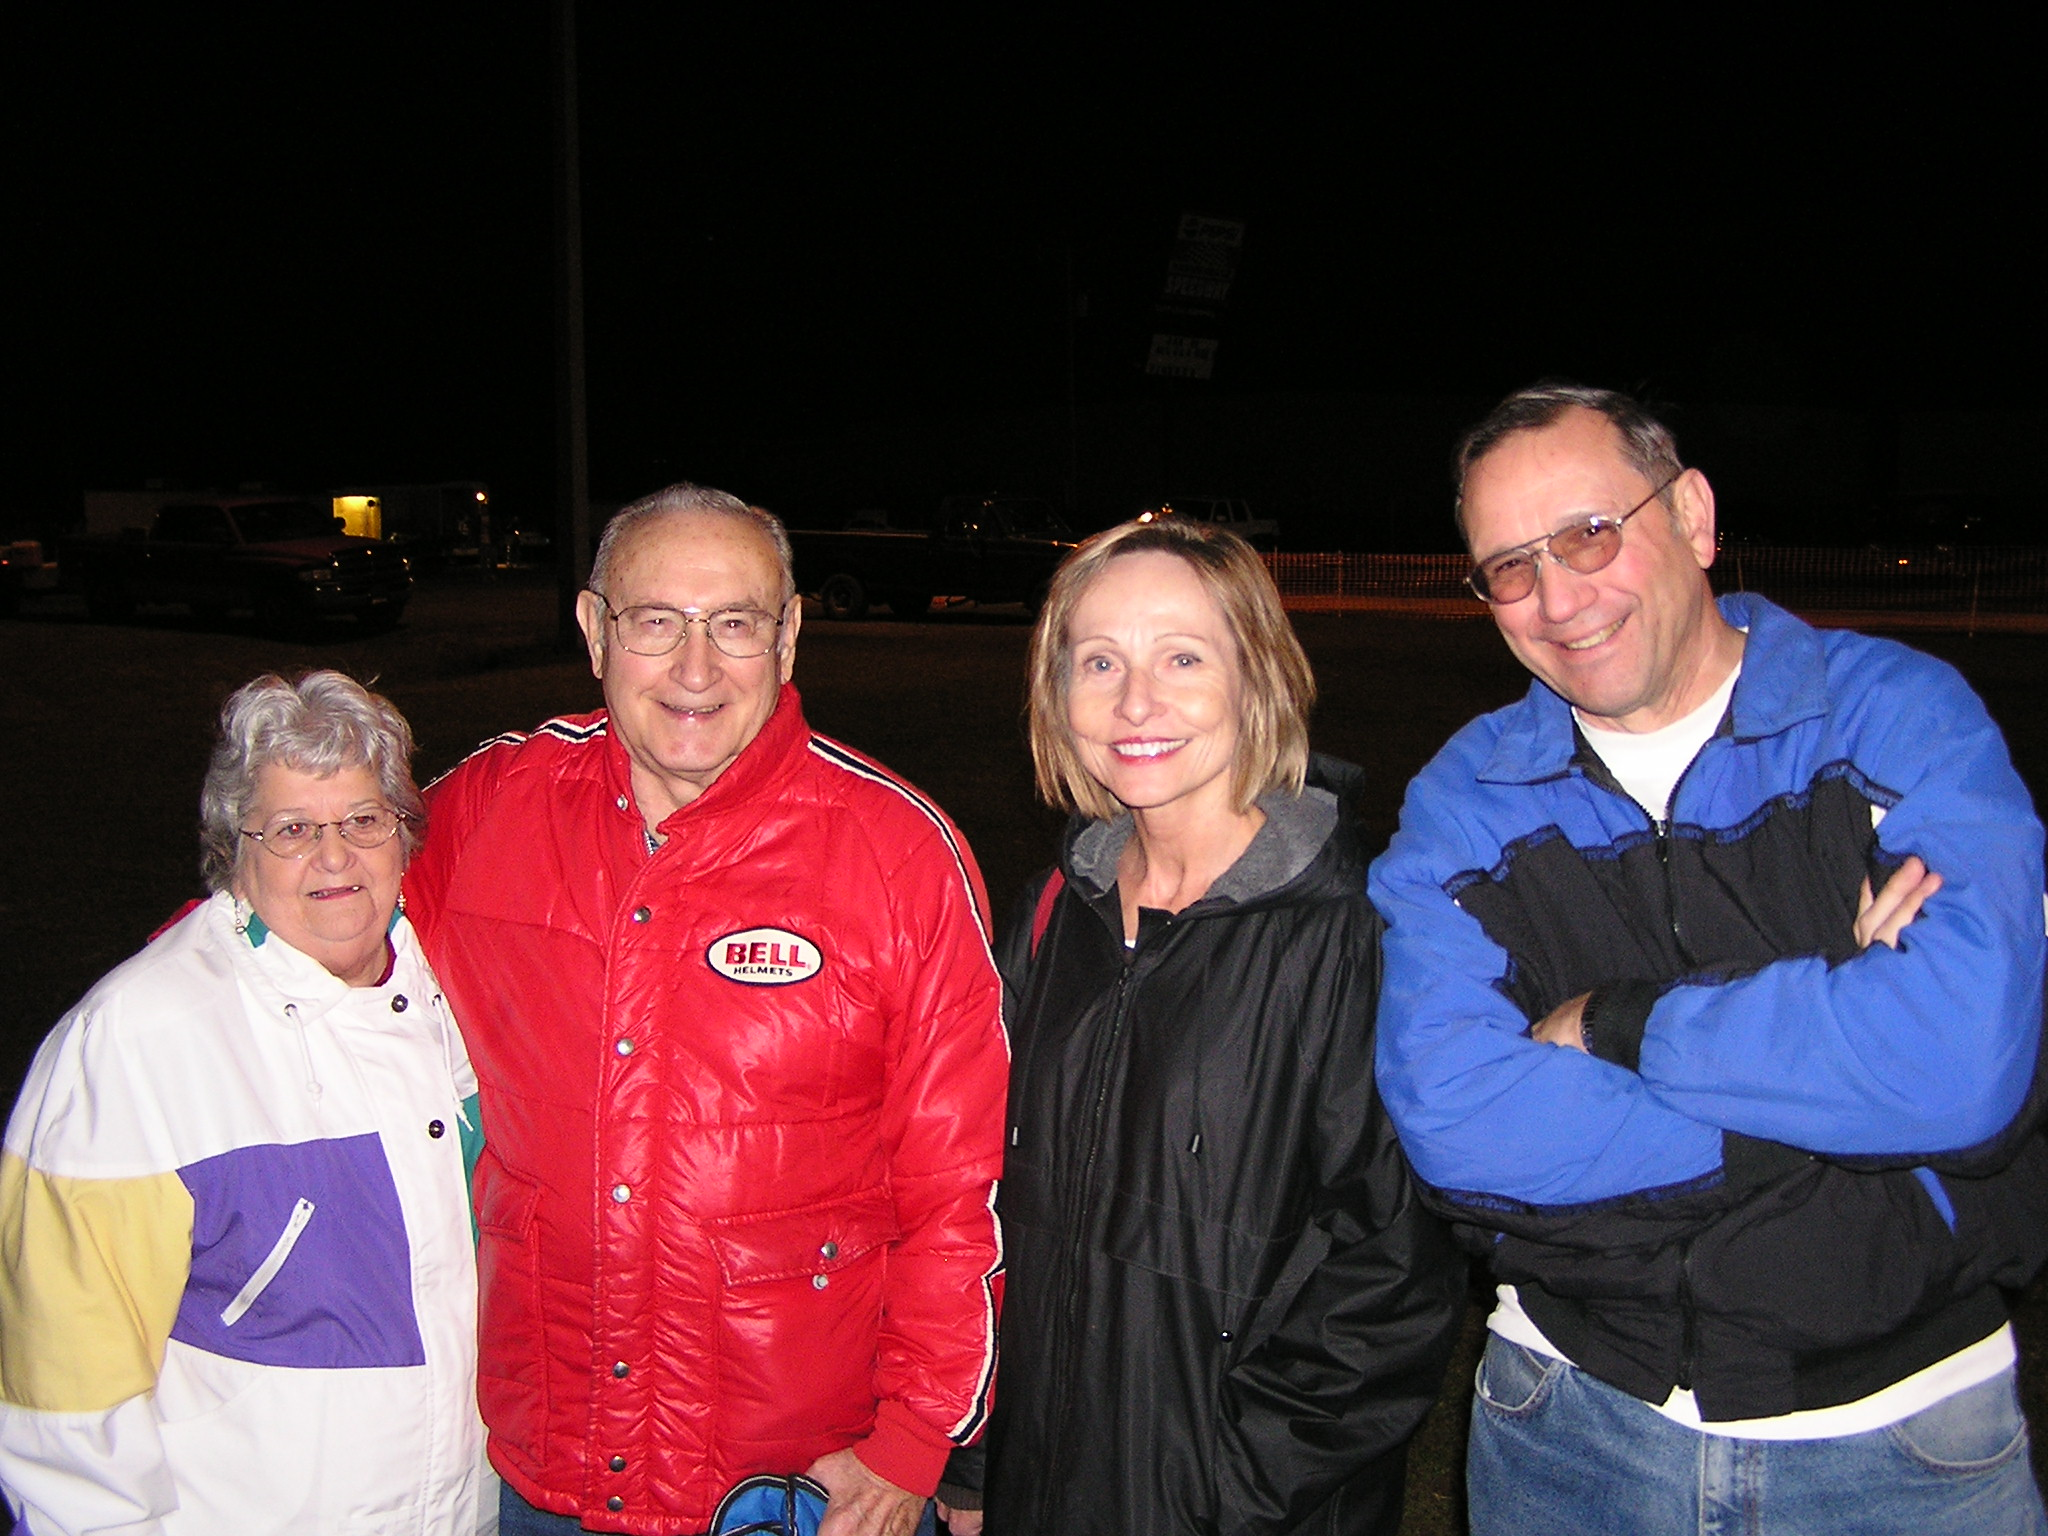 Betty, Bill (my stepfather), Carol and Ed on the night of my 1,000th track in Auburndale, Florida.